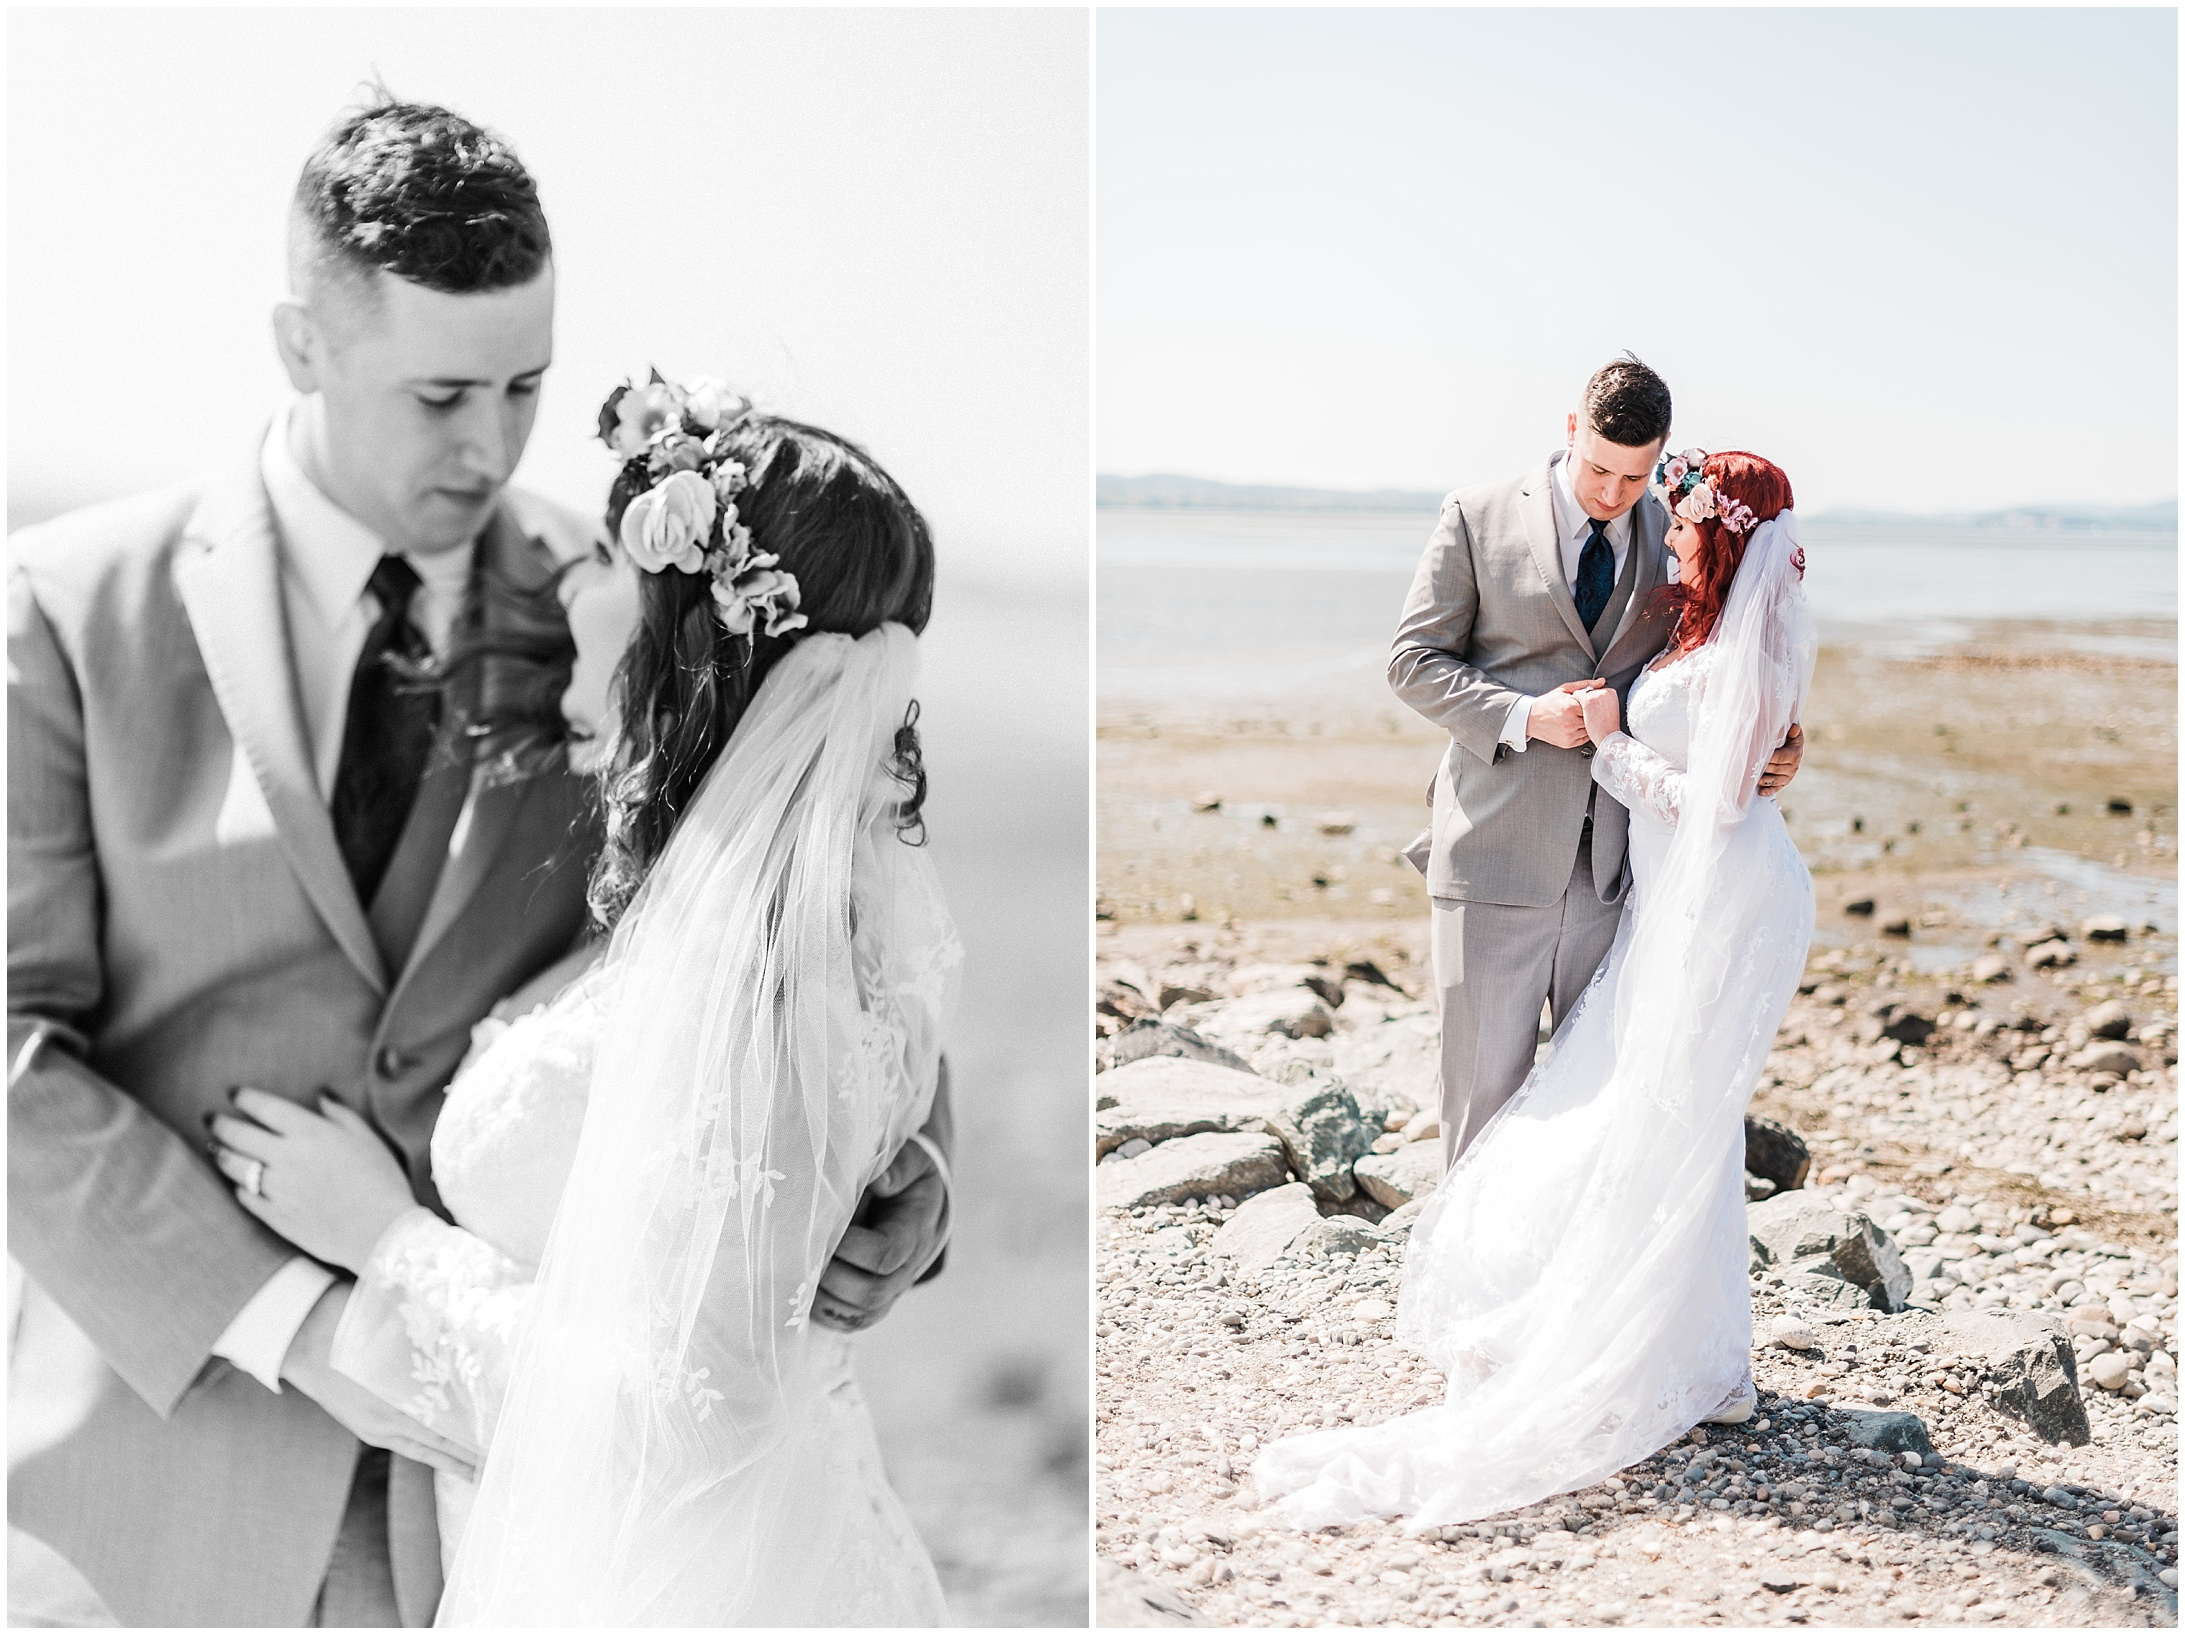 Diptych of a bride and groom on a windy, rocky beach at low tide